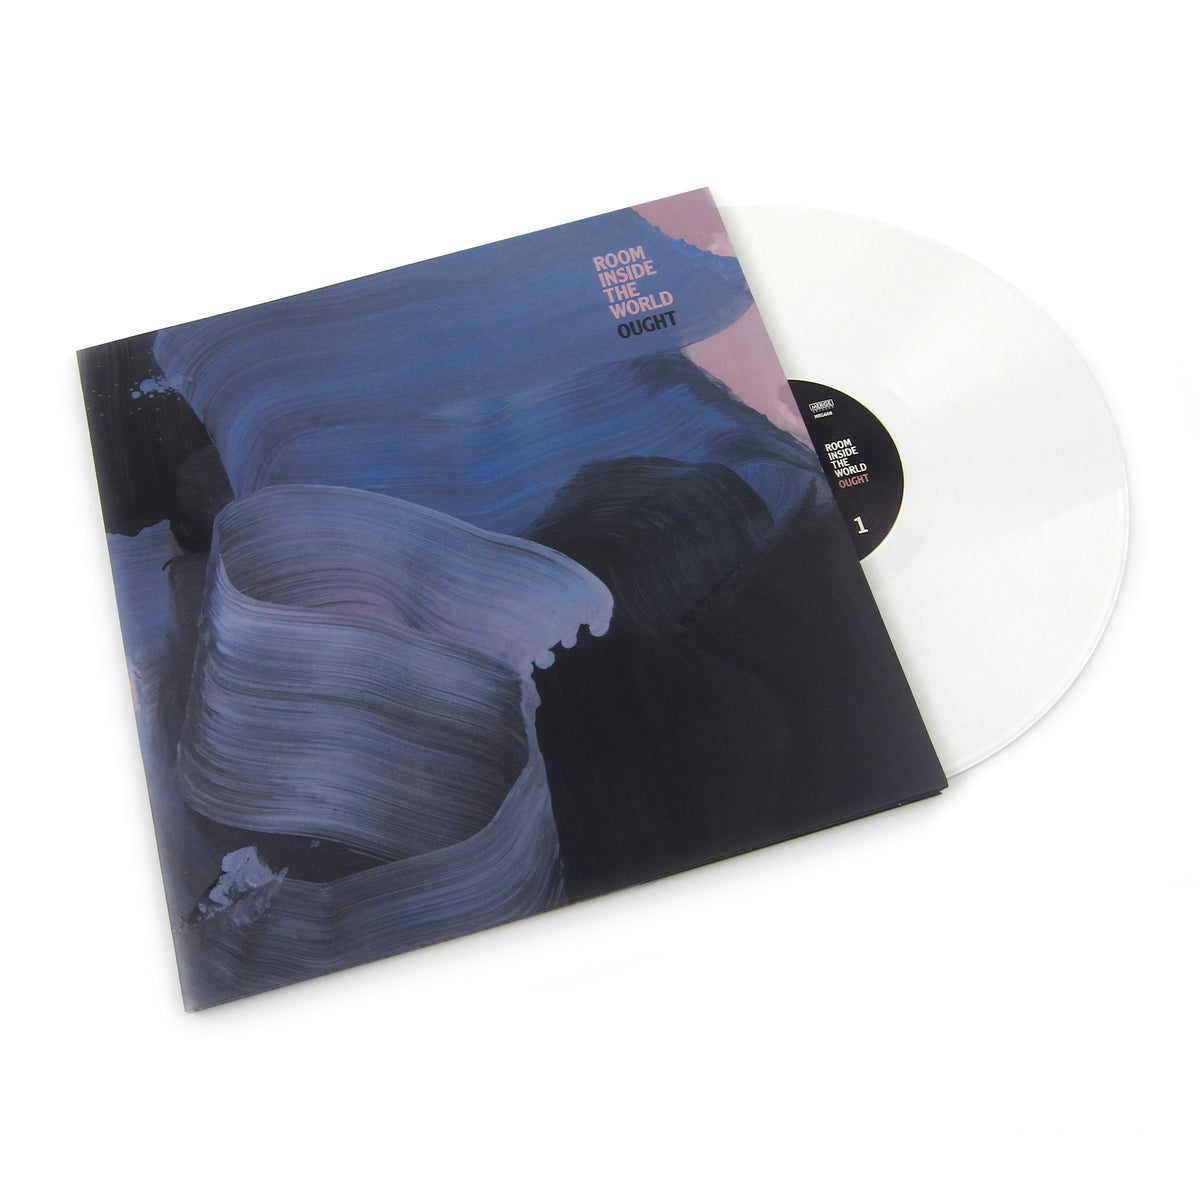 Ought: Room Inside the World (Indie Exclusive Colored Vinyl) Vinyl LP